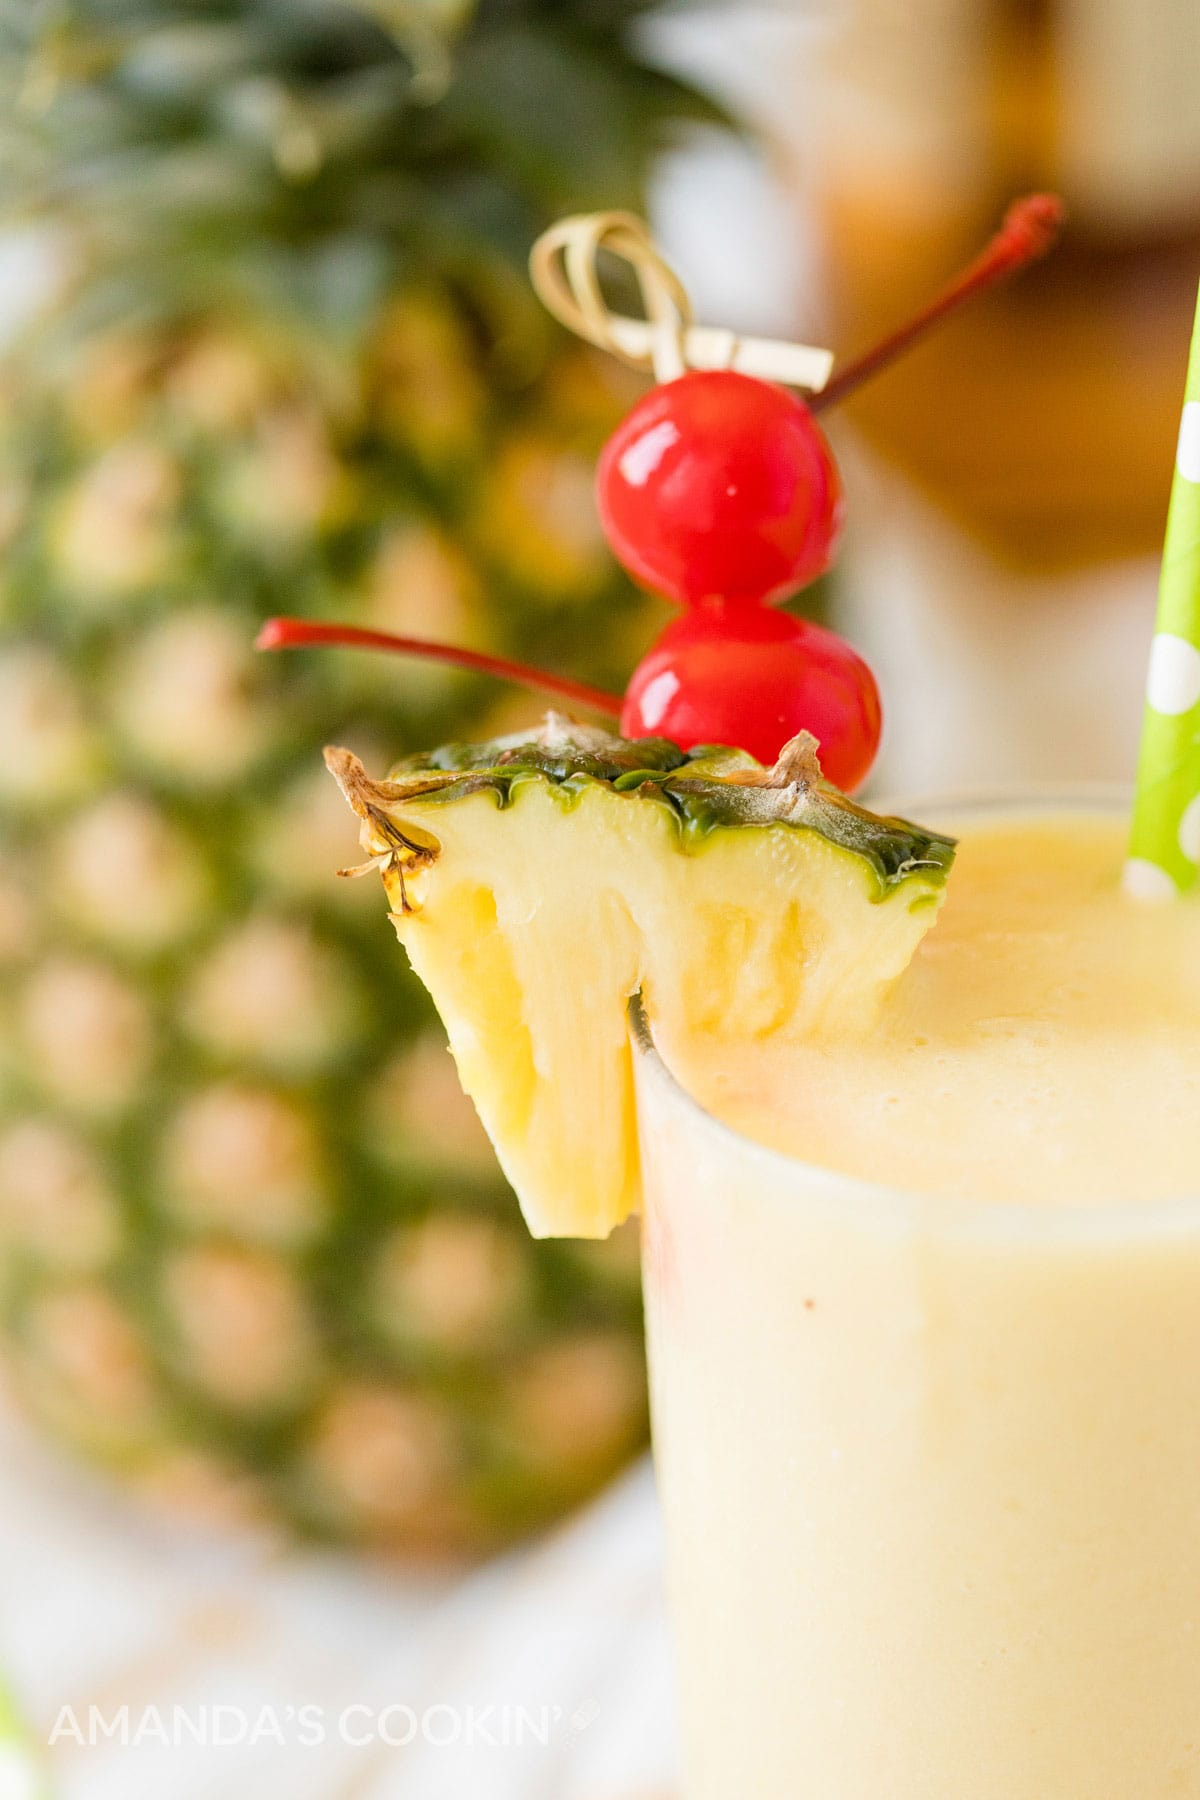 close up of cherry and pineapple garnishes on pineapple rum slush cocktail